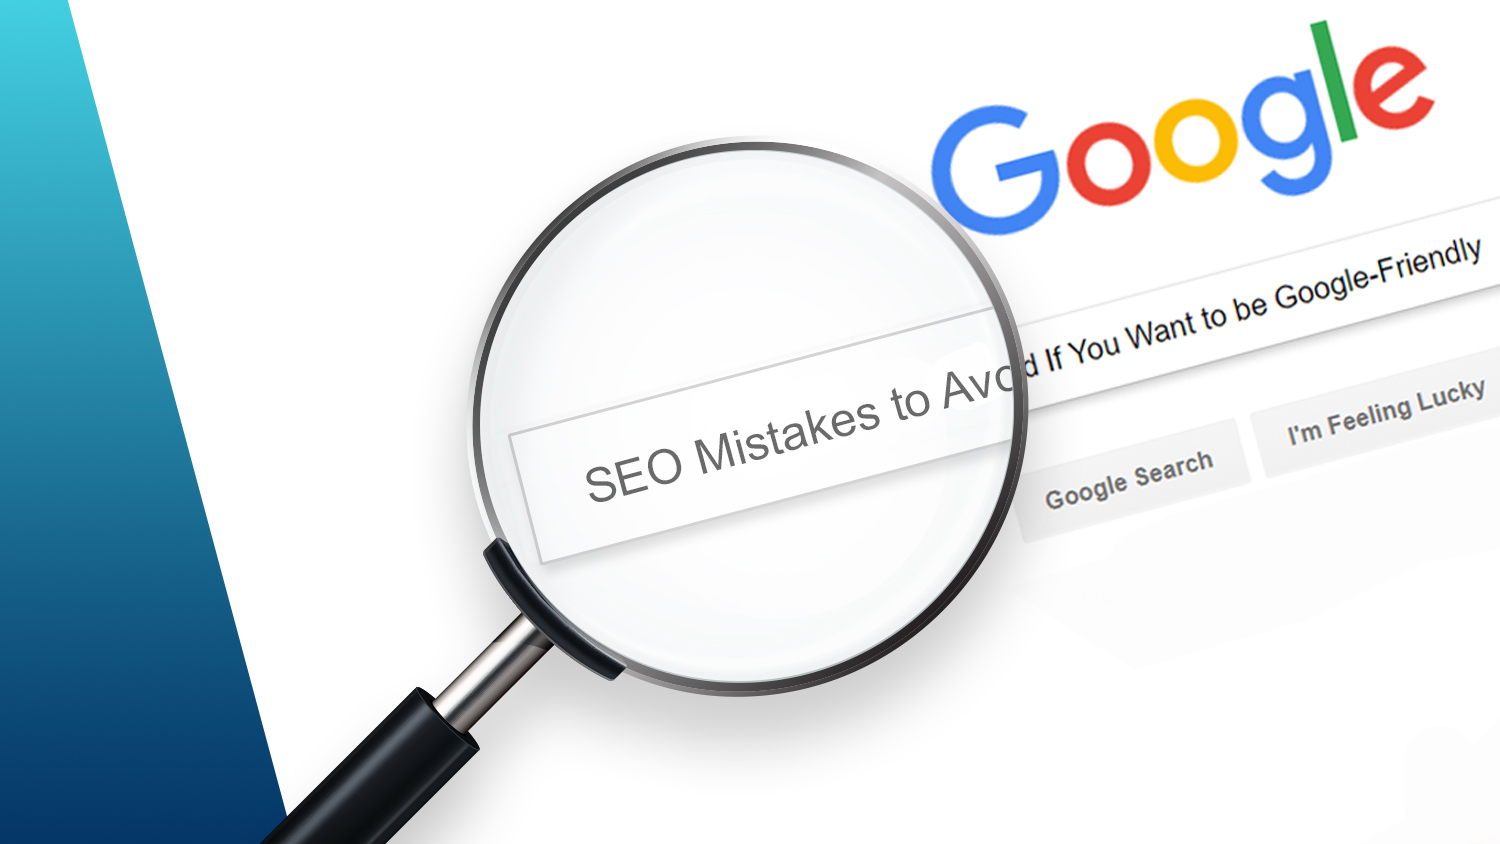 SEO-Mistakes-to-Avoid-If-You-Want-to-be-Google-Friendly